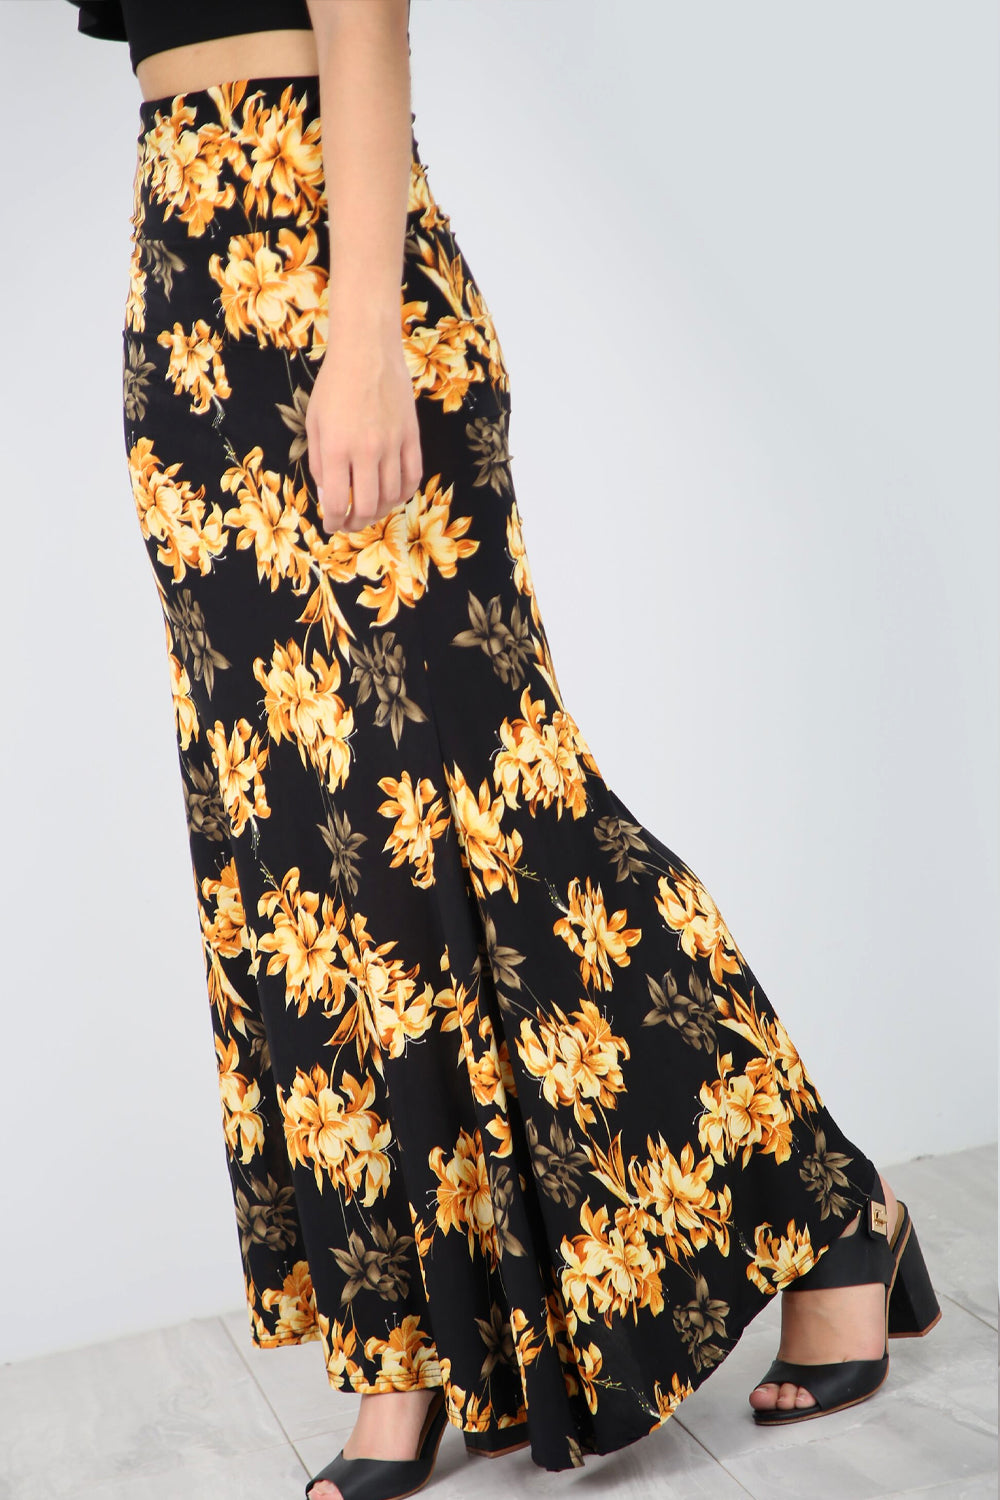 High Waist Yellow Floral Fish Tail Maxi Skirt - bejealous-com